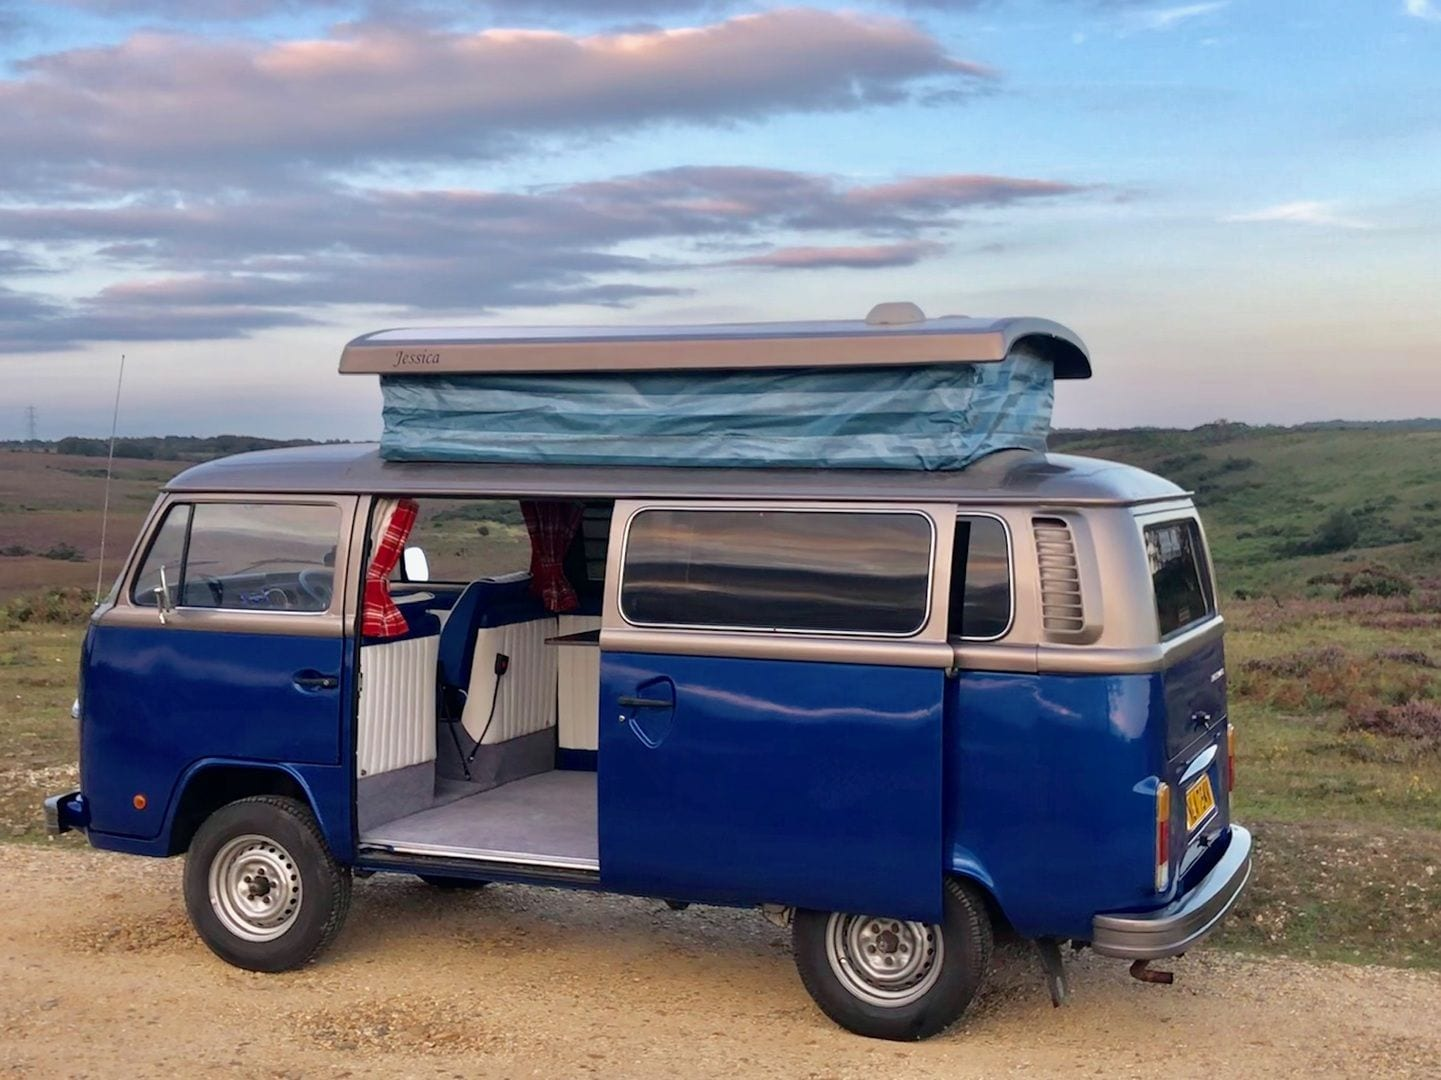 Campervan open fully with roof extended